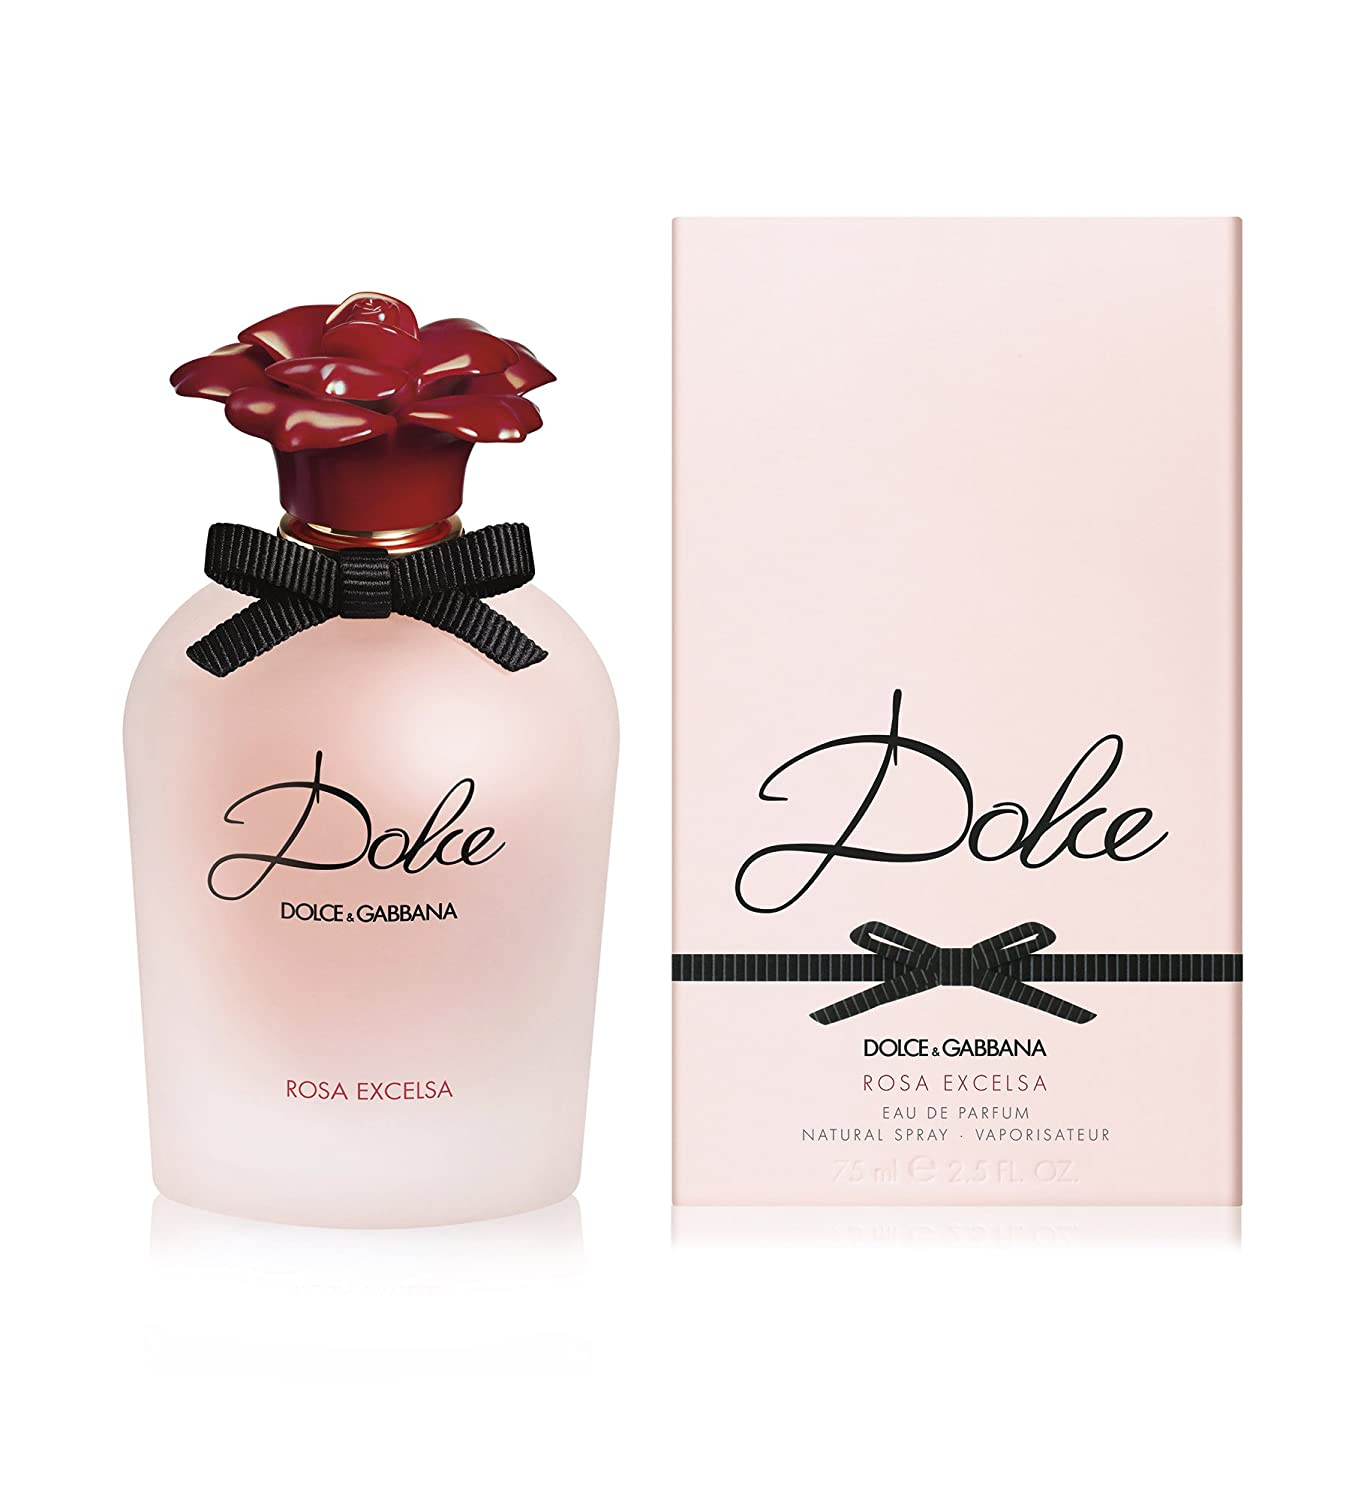 fd9ecf7f7 Dolce & Gabbana Dolce Rosa Excelsa Eau De Parfum For Women, 75ml: Dolce  Rosa Excelsa: Amazon.in: Beauty